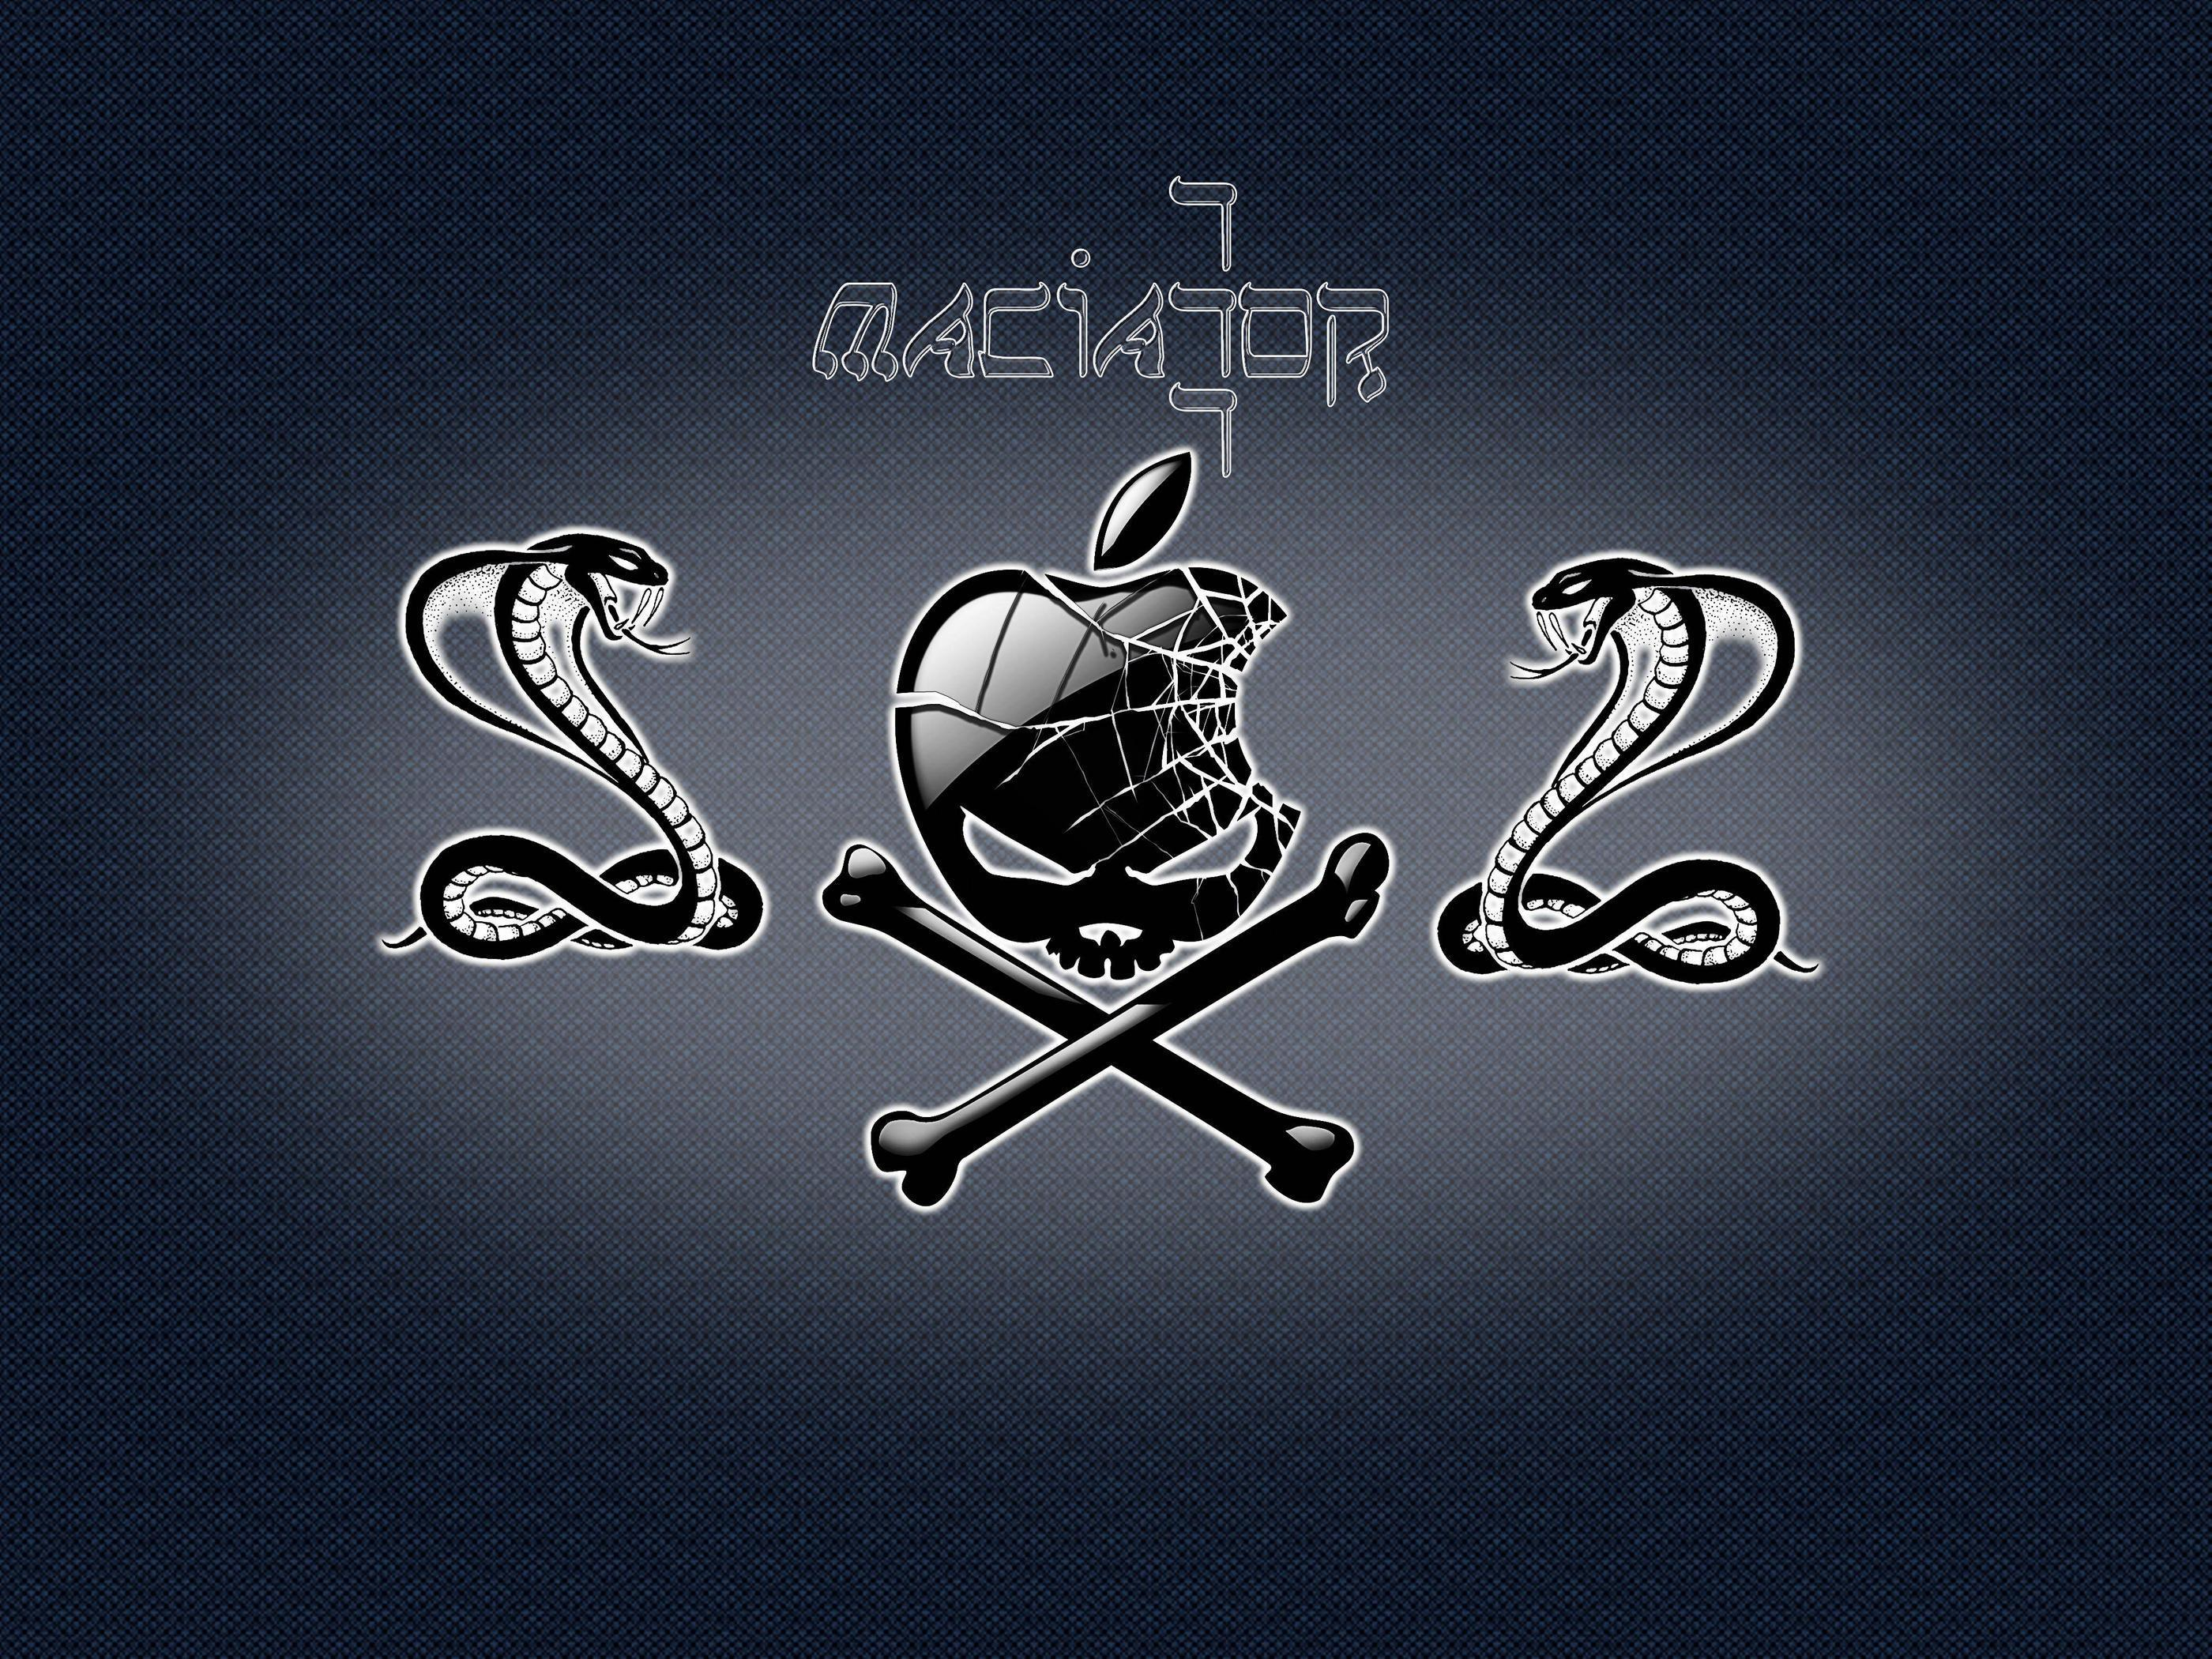 hackers wallpaper wallpapers de - photo #17